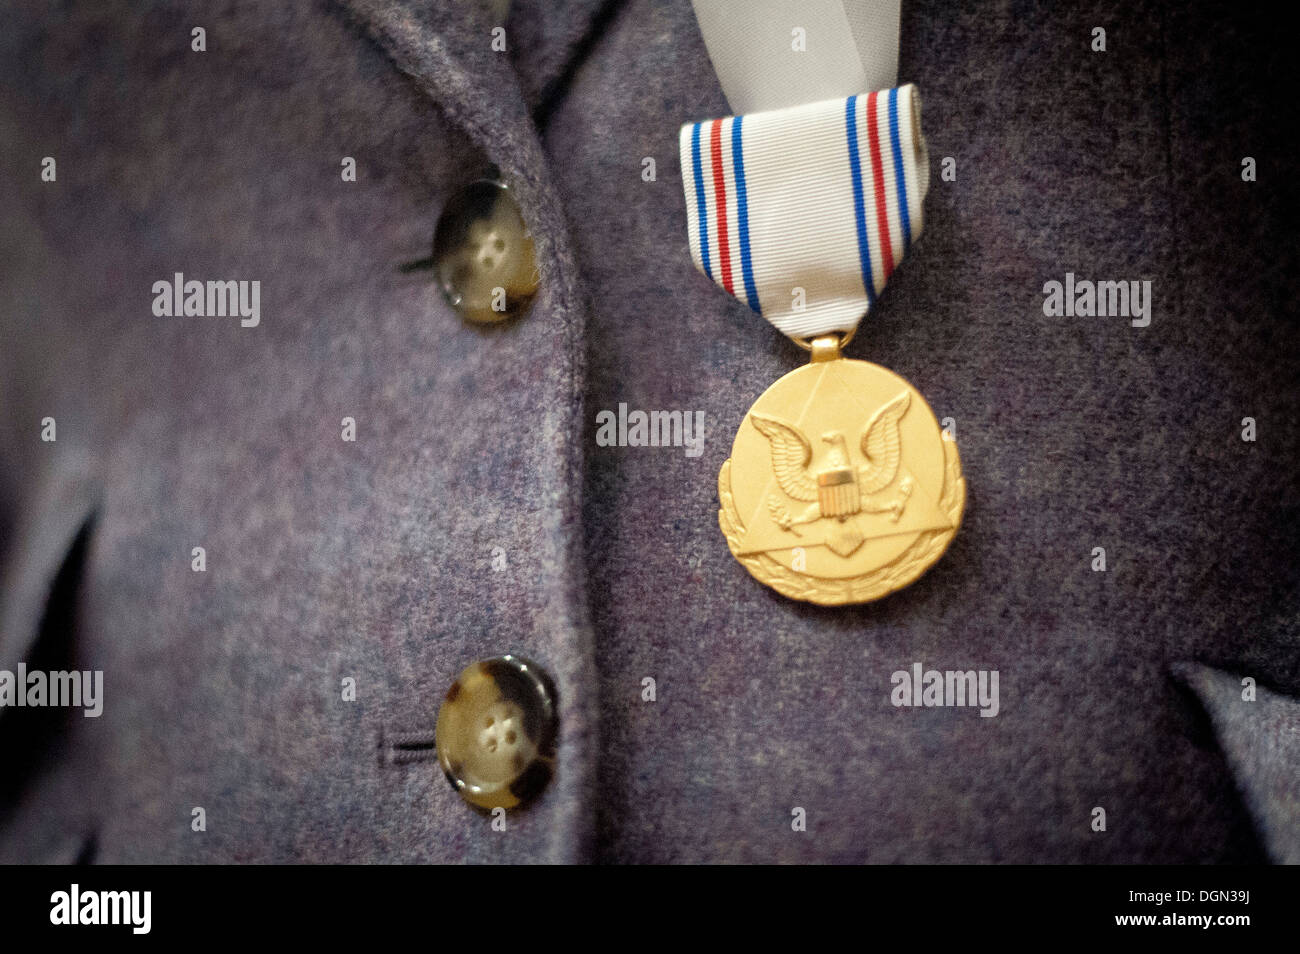 Close-up photo of the Army Decoration for Distinguished Civilian Service that was just presented to former Rep. Gabrielle 'Gabby' Giffords (Ariz.) for 'outstanding public service and support of the Army's missions', October 10, 2013 at the Pentagon, Washi - Stock Image